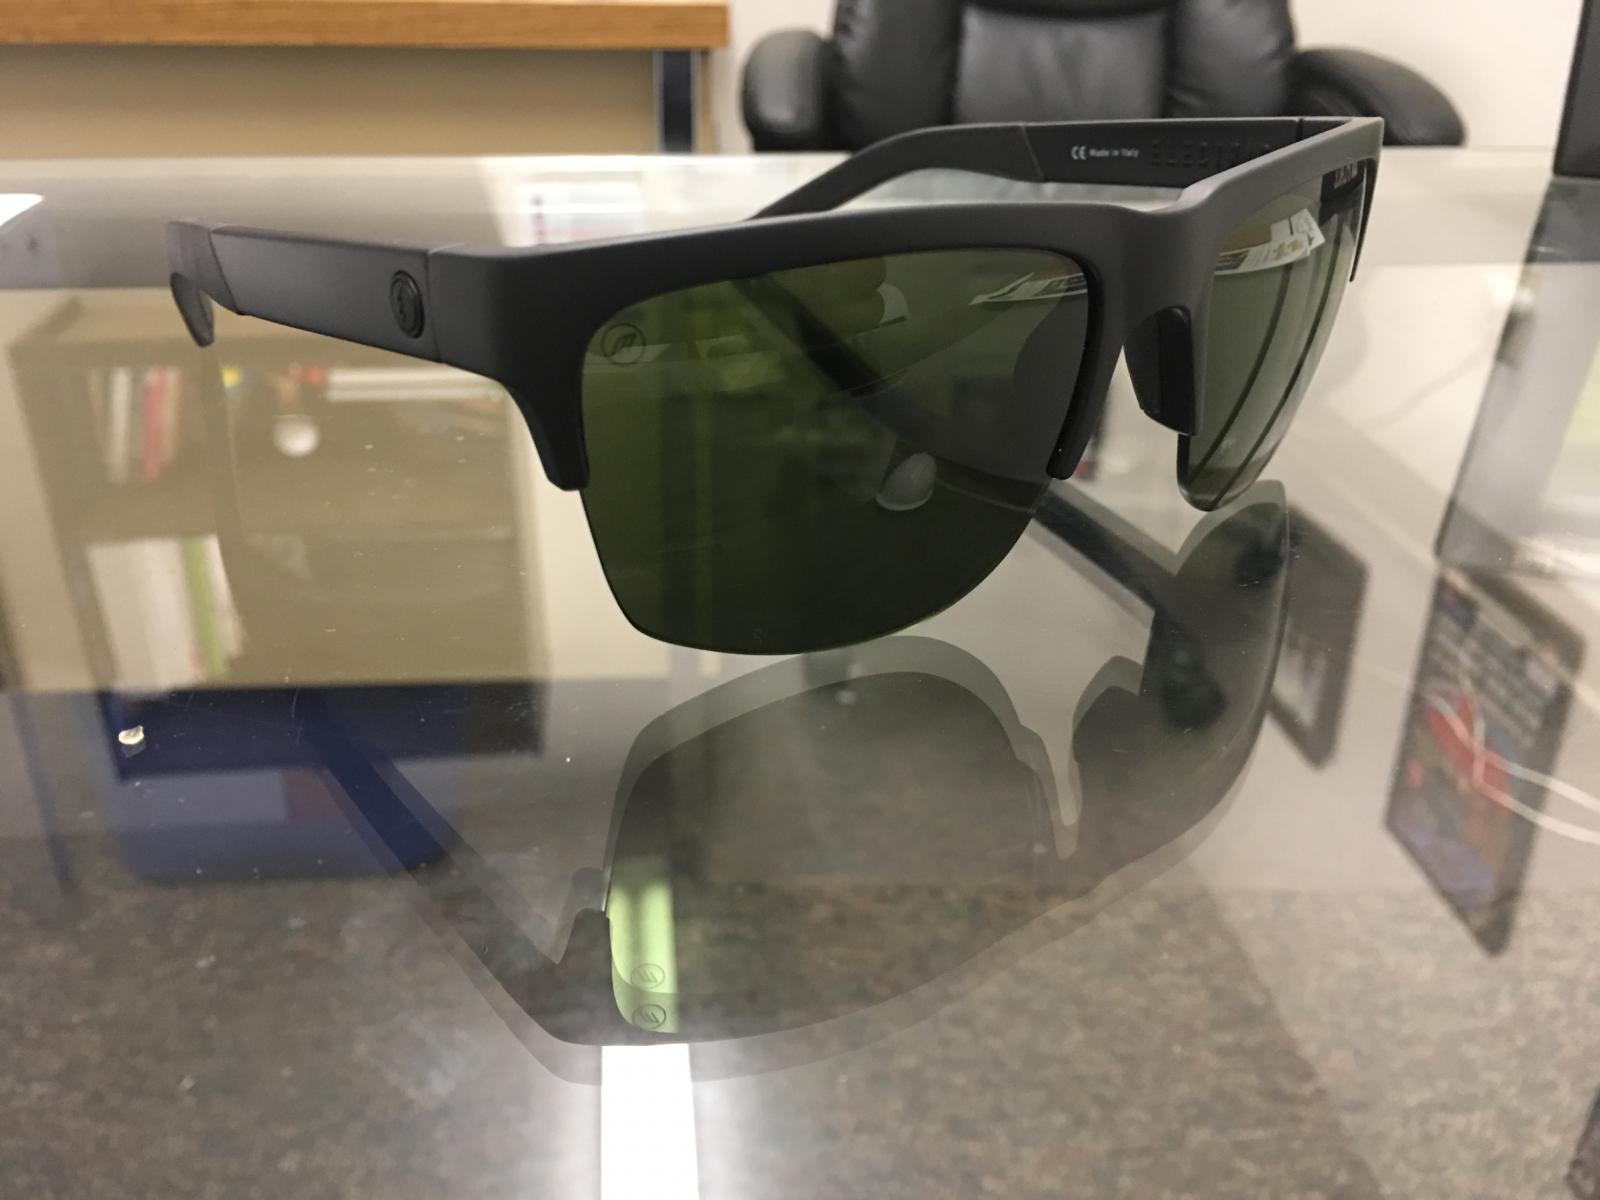 89dbee8384765 ... electric sunglasses. Knoxville pro non polarized. Matte black.  120obo.  DCEC03C6-C636-4A8A-A5D7-30AD7261C748.jpeg